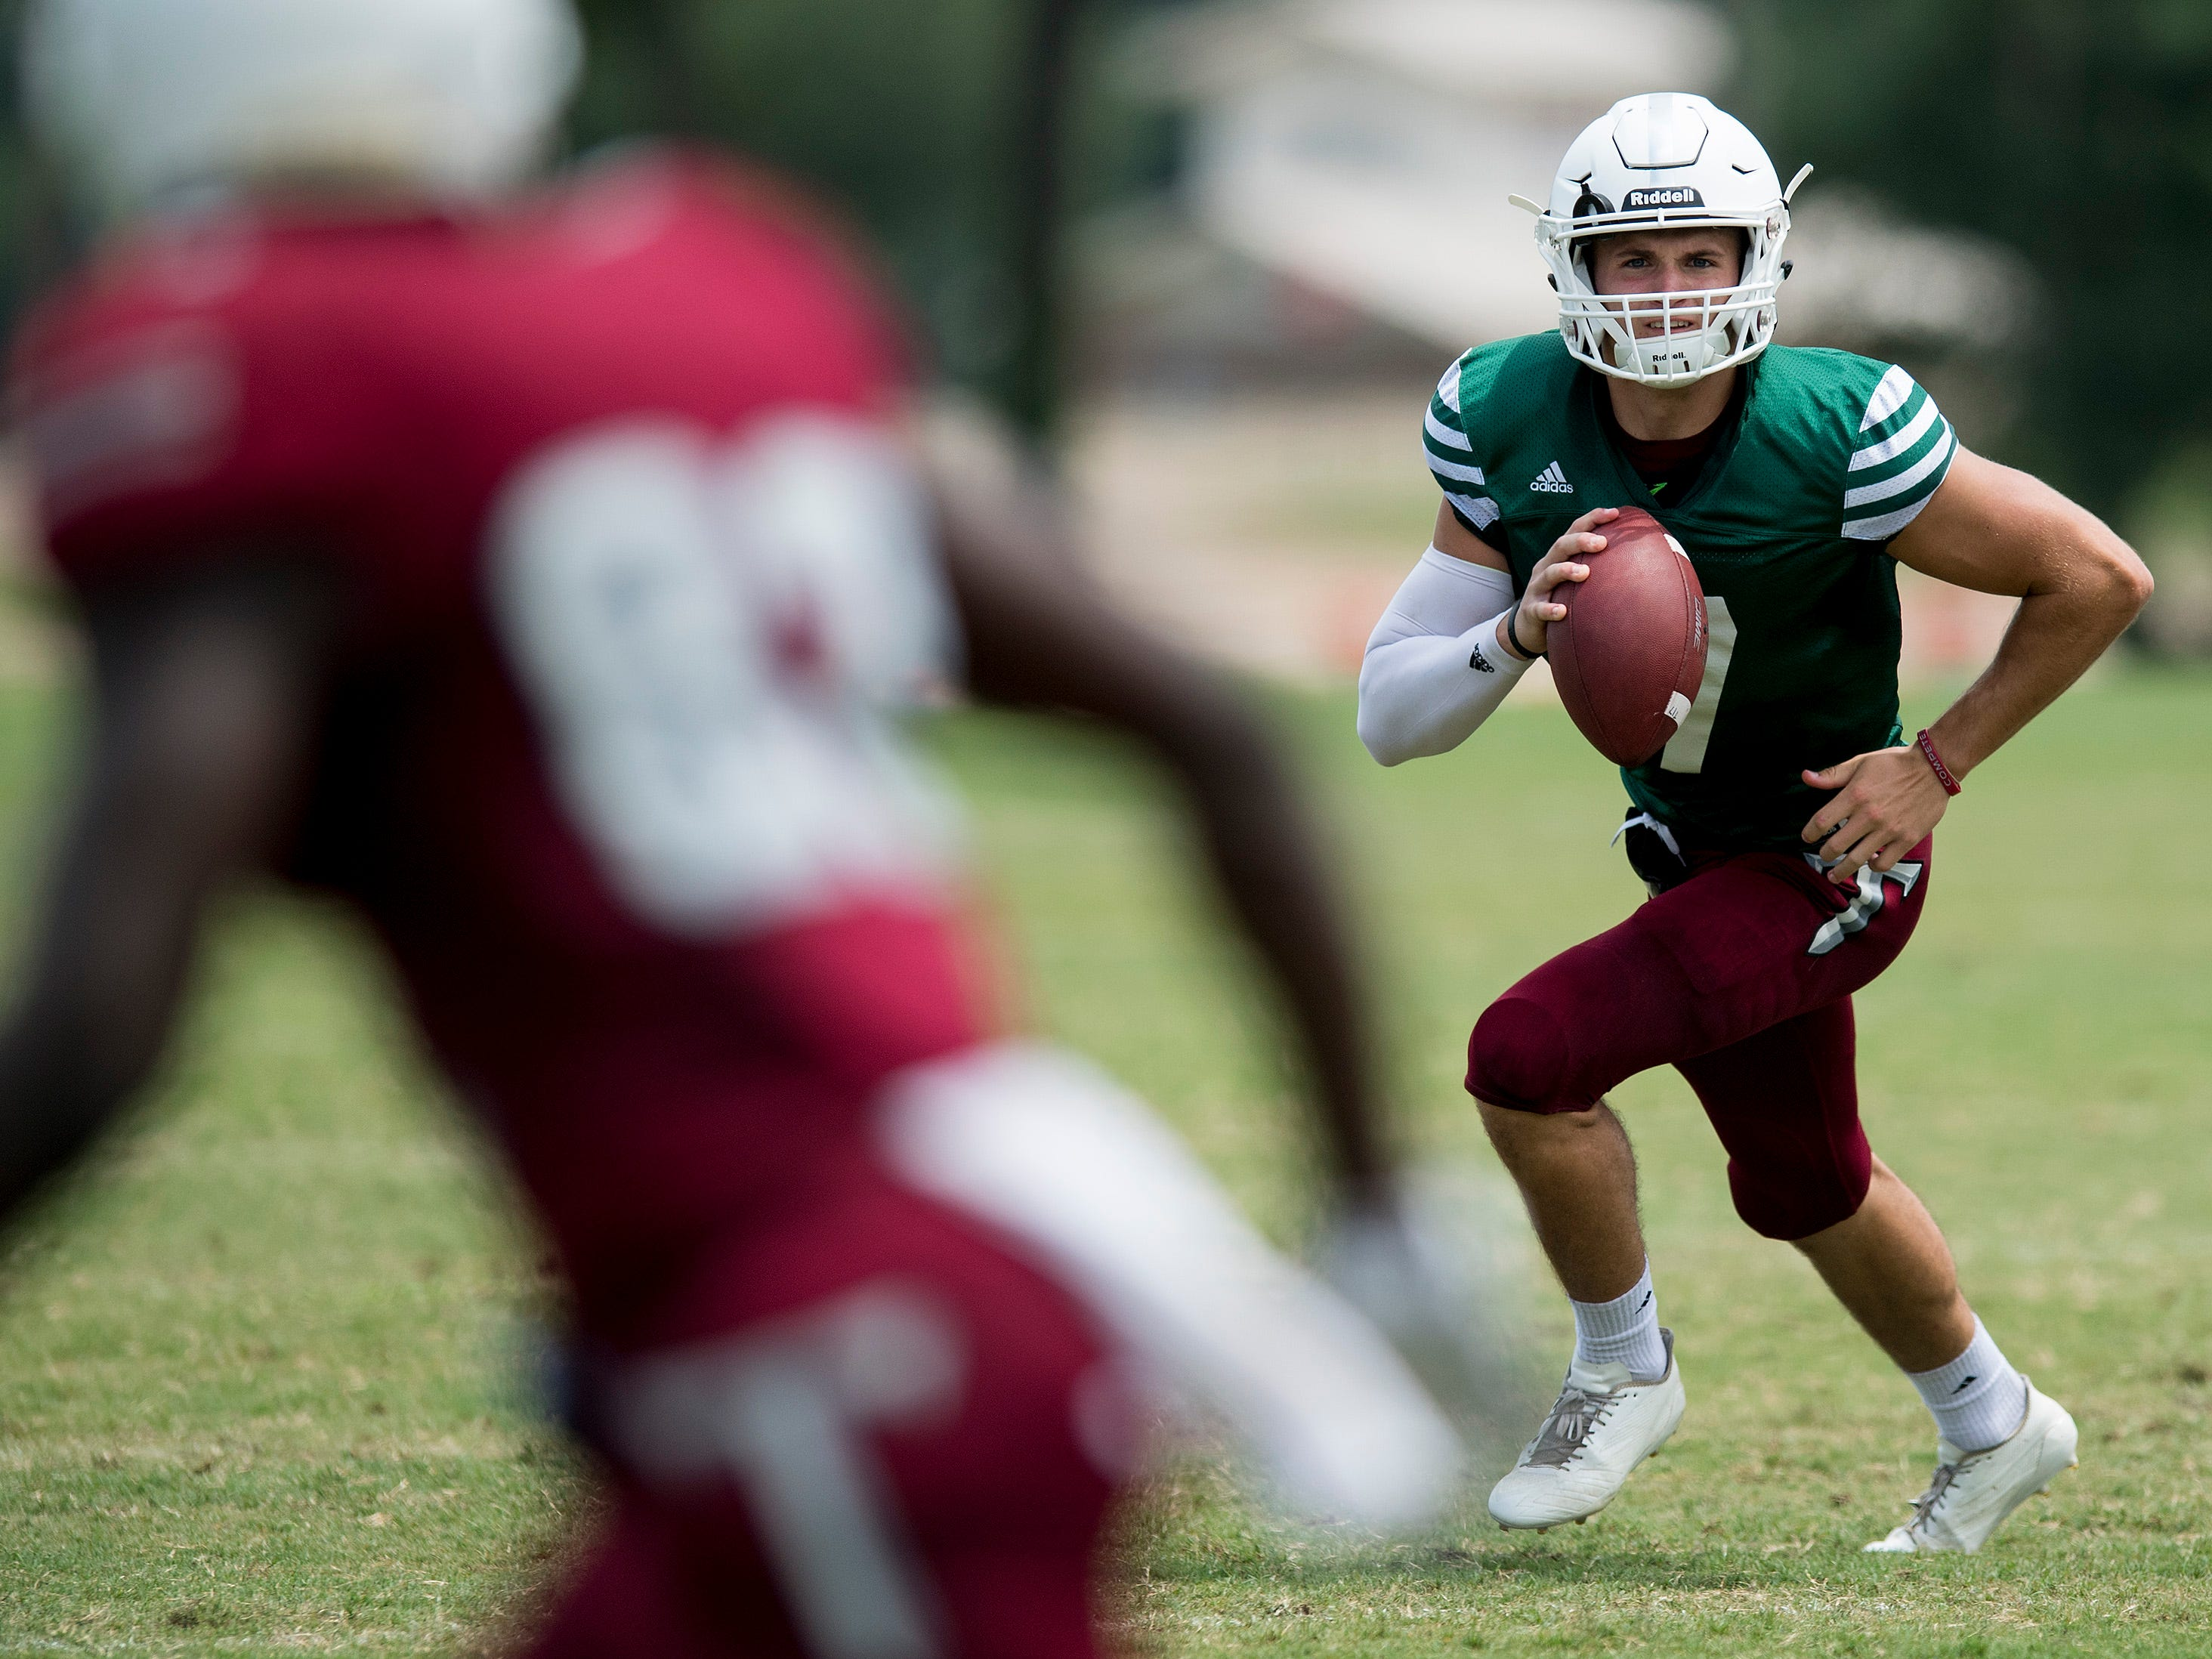 Troy University quarterback Kaleb Barker rolls out during the scrimmage in Troy, Ala. on Saturday August 11, 2018.